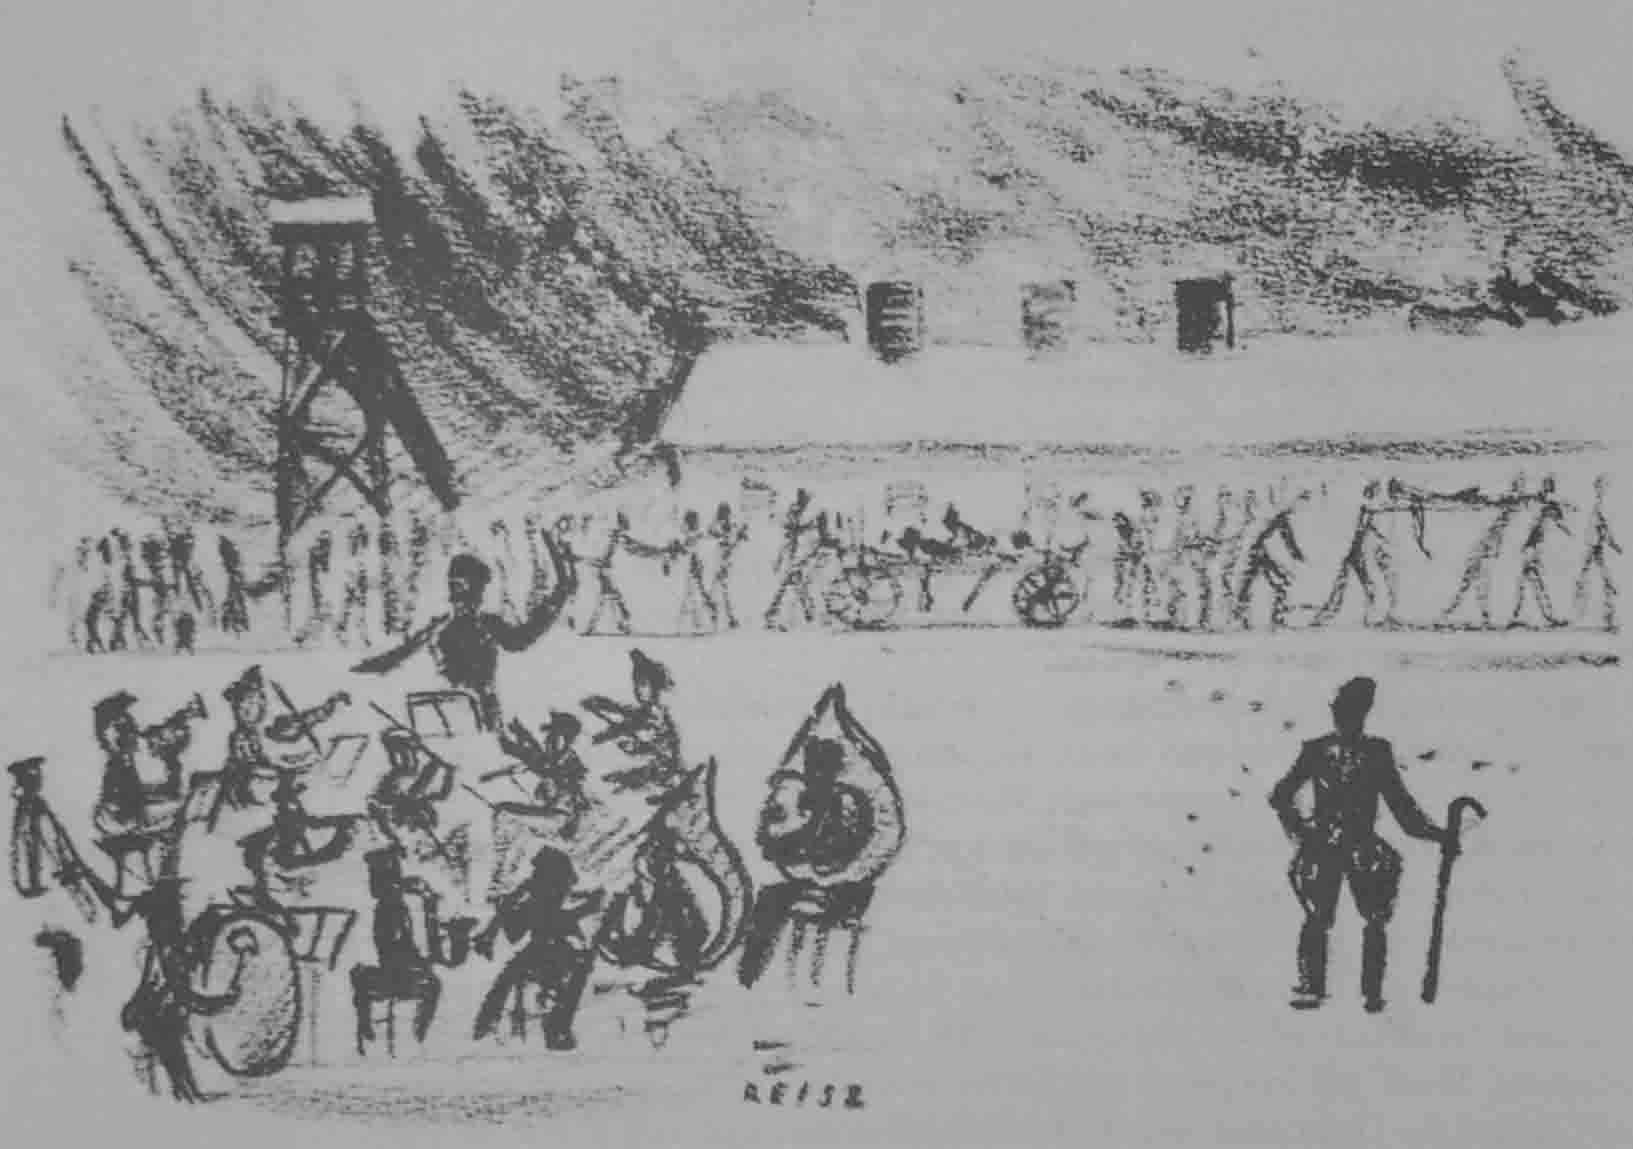 Figure 4. This drawing was made secretly in Birkenau by François Reisz. It shows the camp orchestra playing as work details returns to the camp; they carried out the dead on stretchers and handcarts (published in Projektgruppe Musik in Konzentrationslagern, ed., Musik in Konzentrationslagern (Freiburg i.Br., 1991), 58)